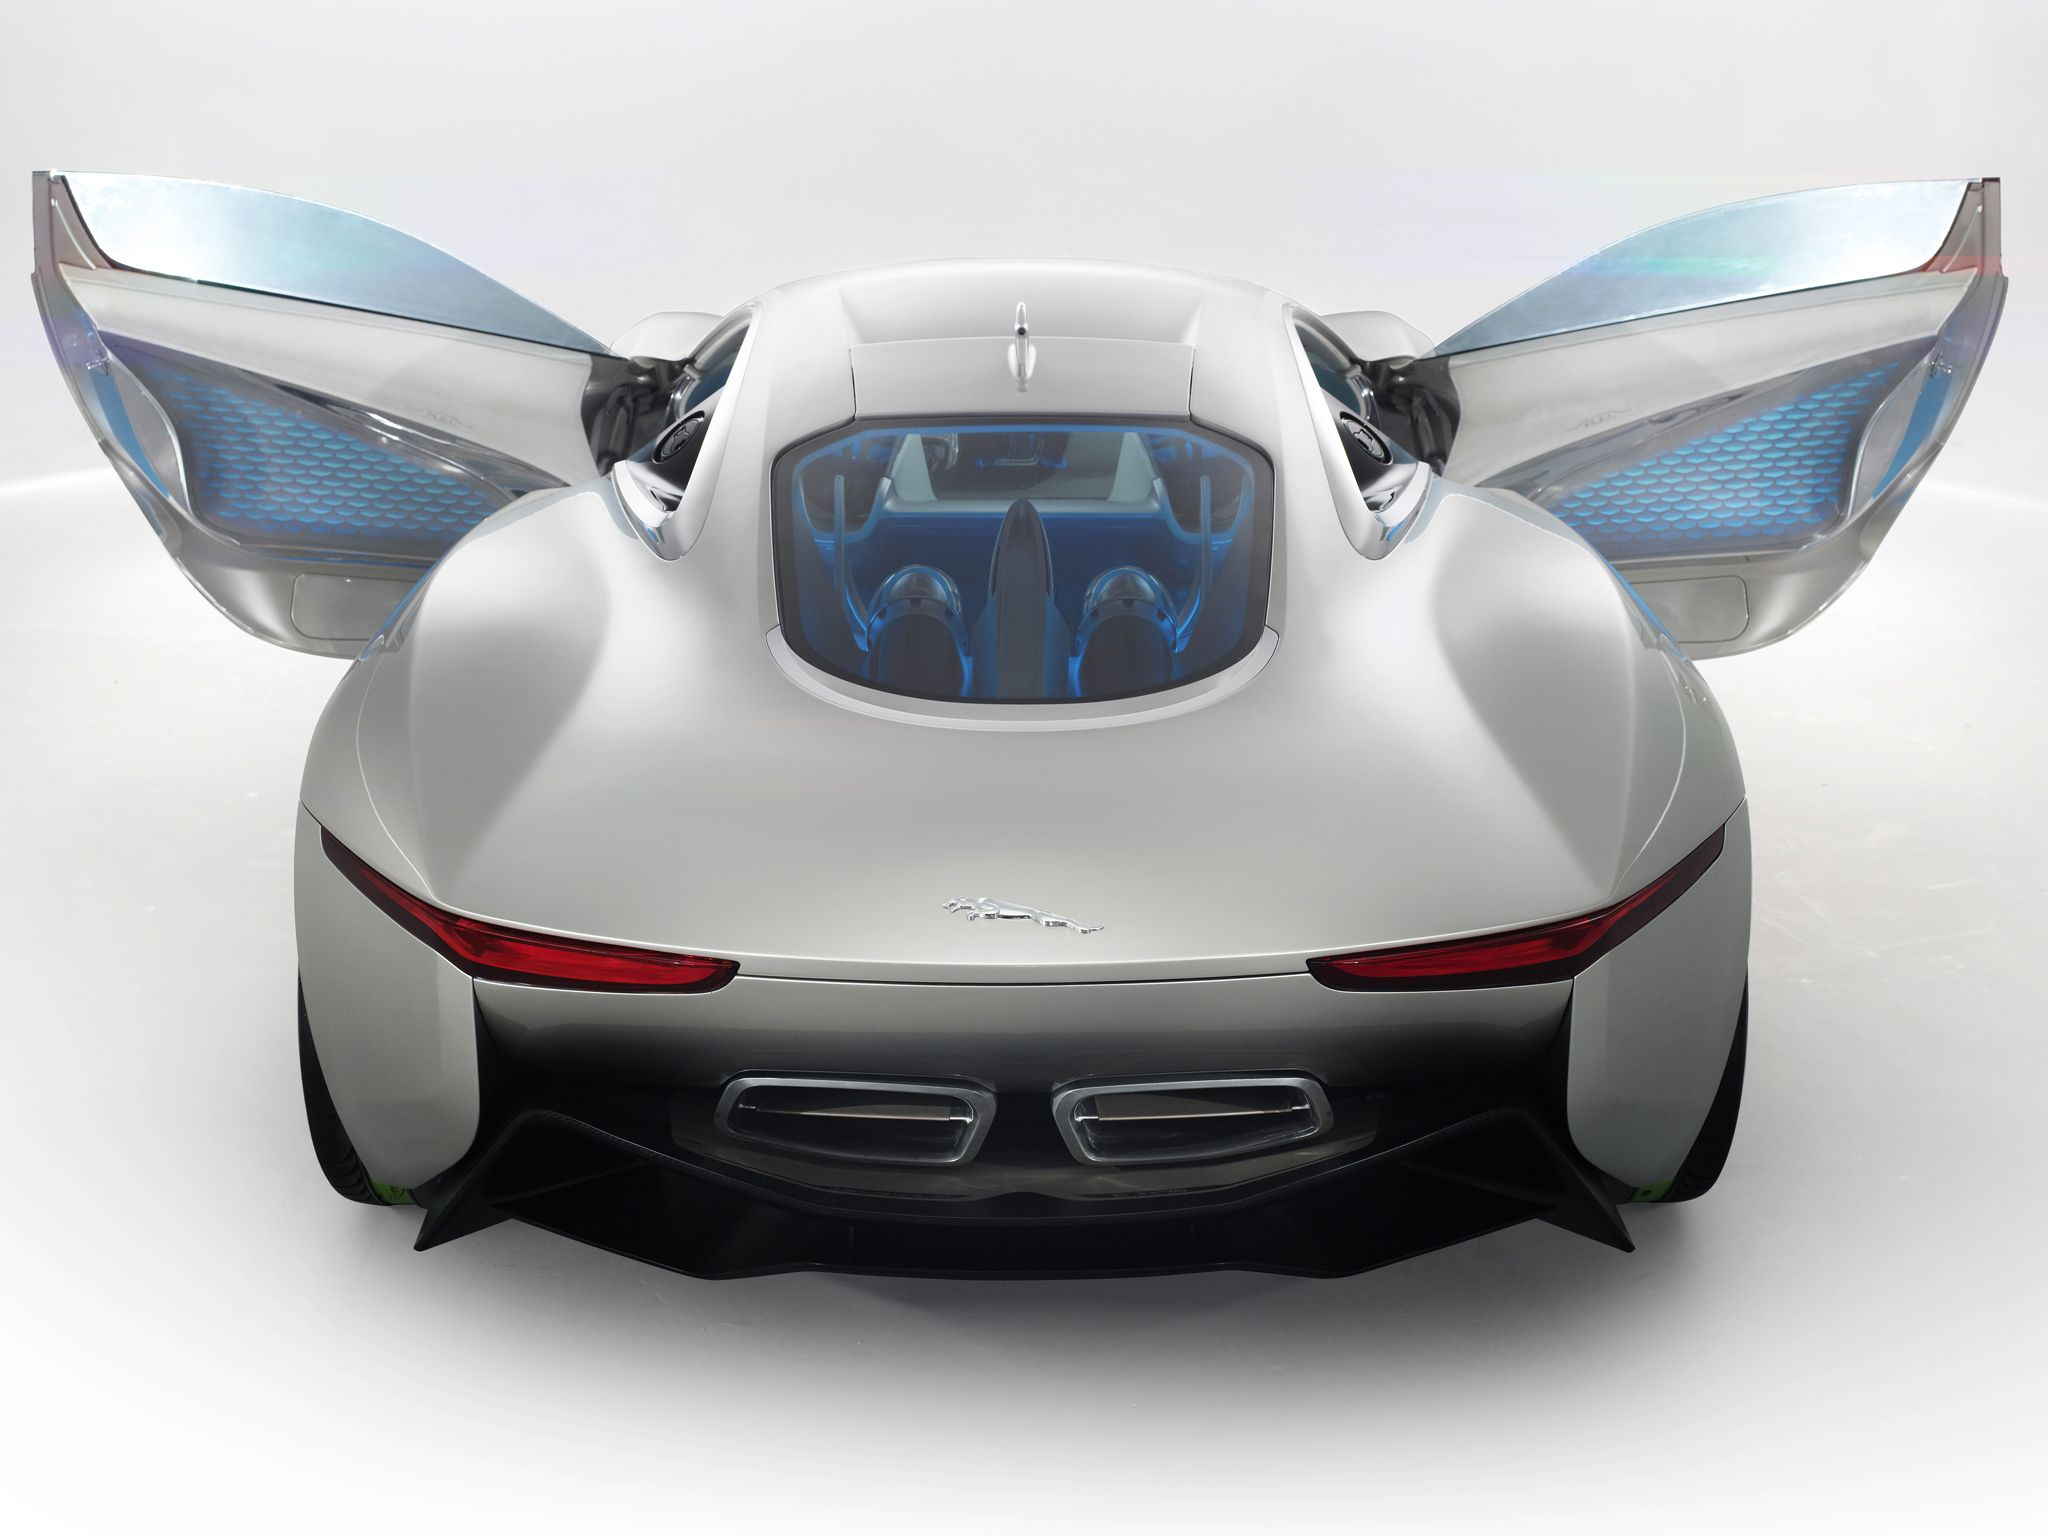 Jaguar C X75 Concept Rear And Doors Carros Incriveis Carros Auto